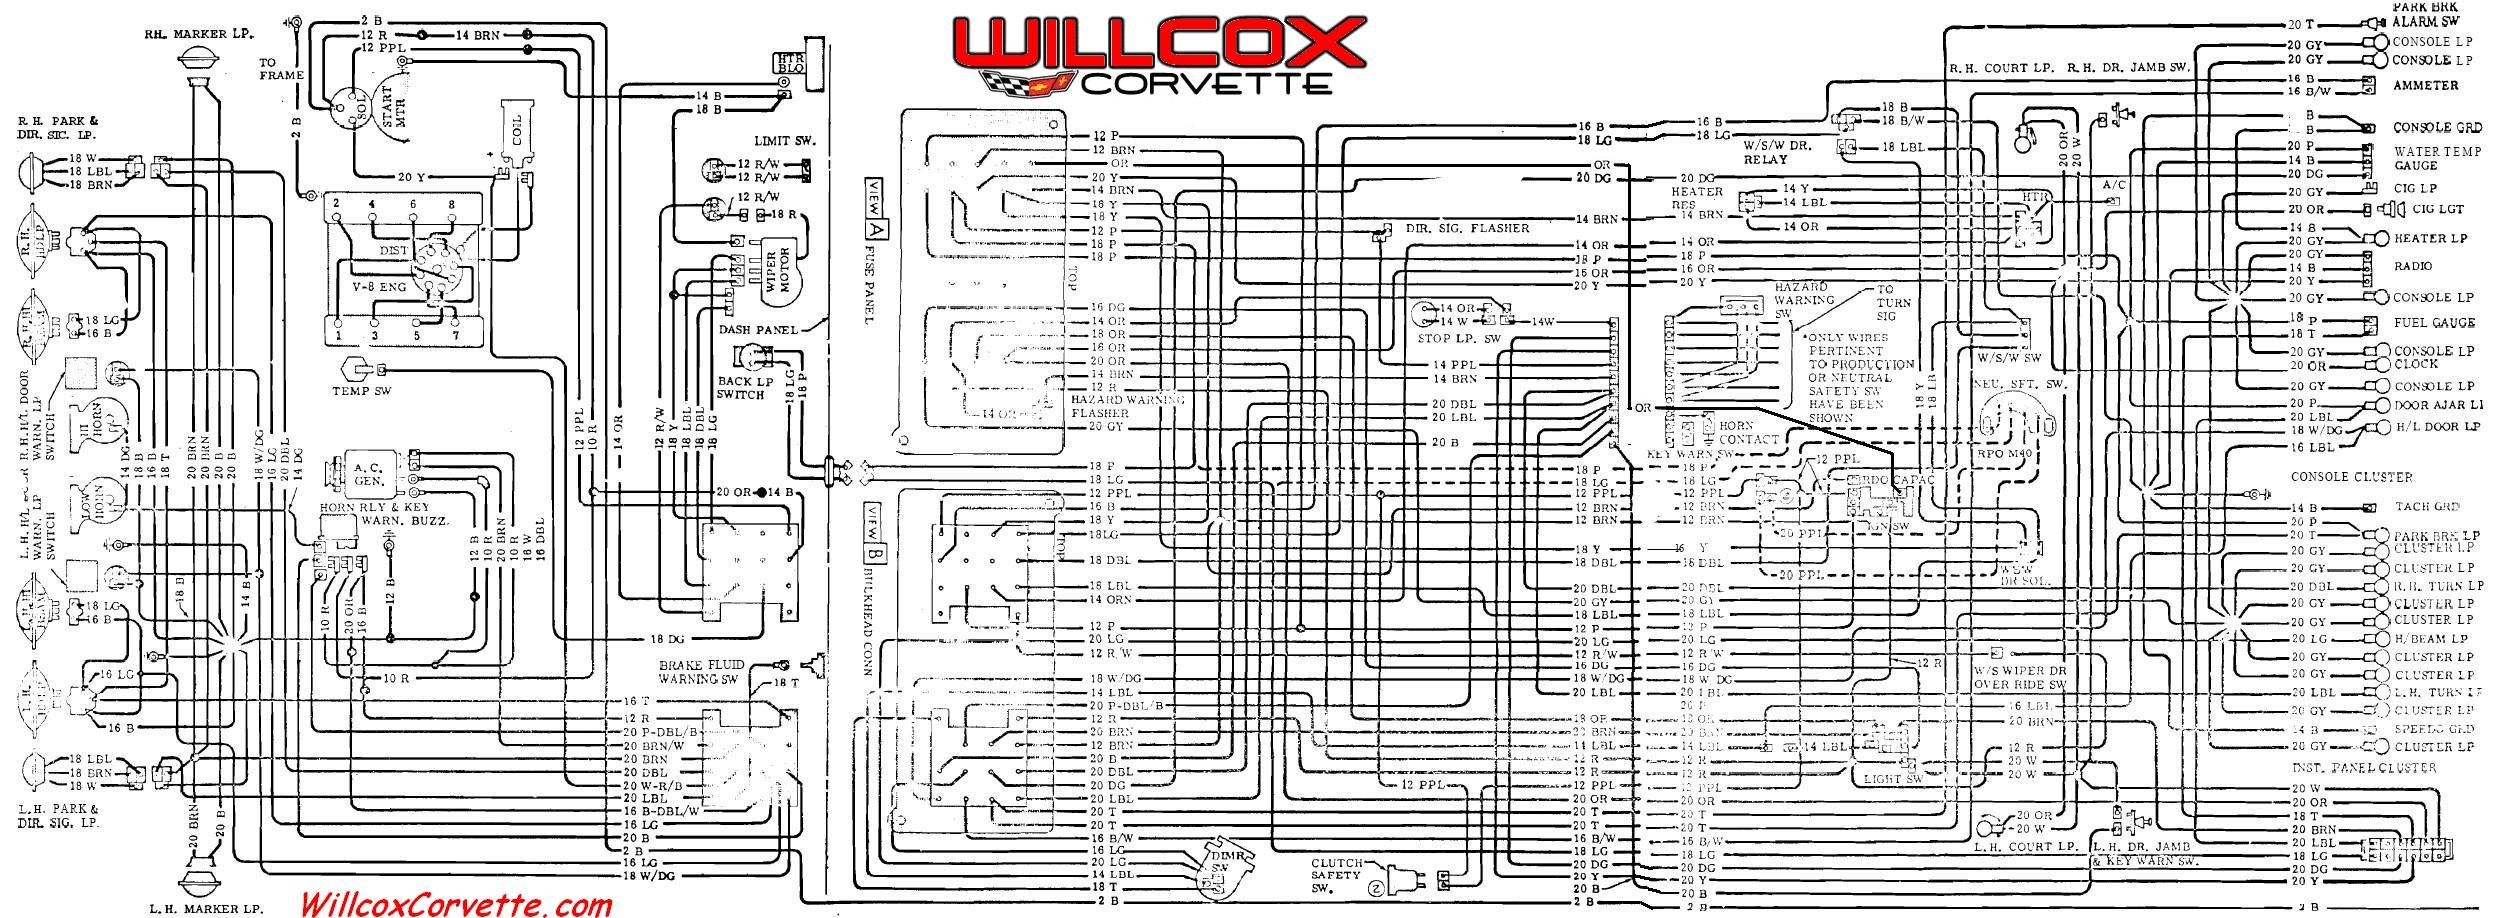 WRG-8908] Citroen C3 Wiring Diagram Pdf on